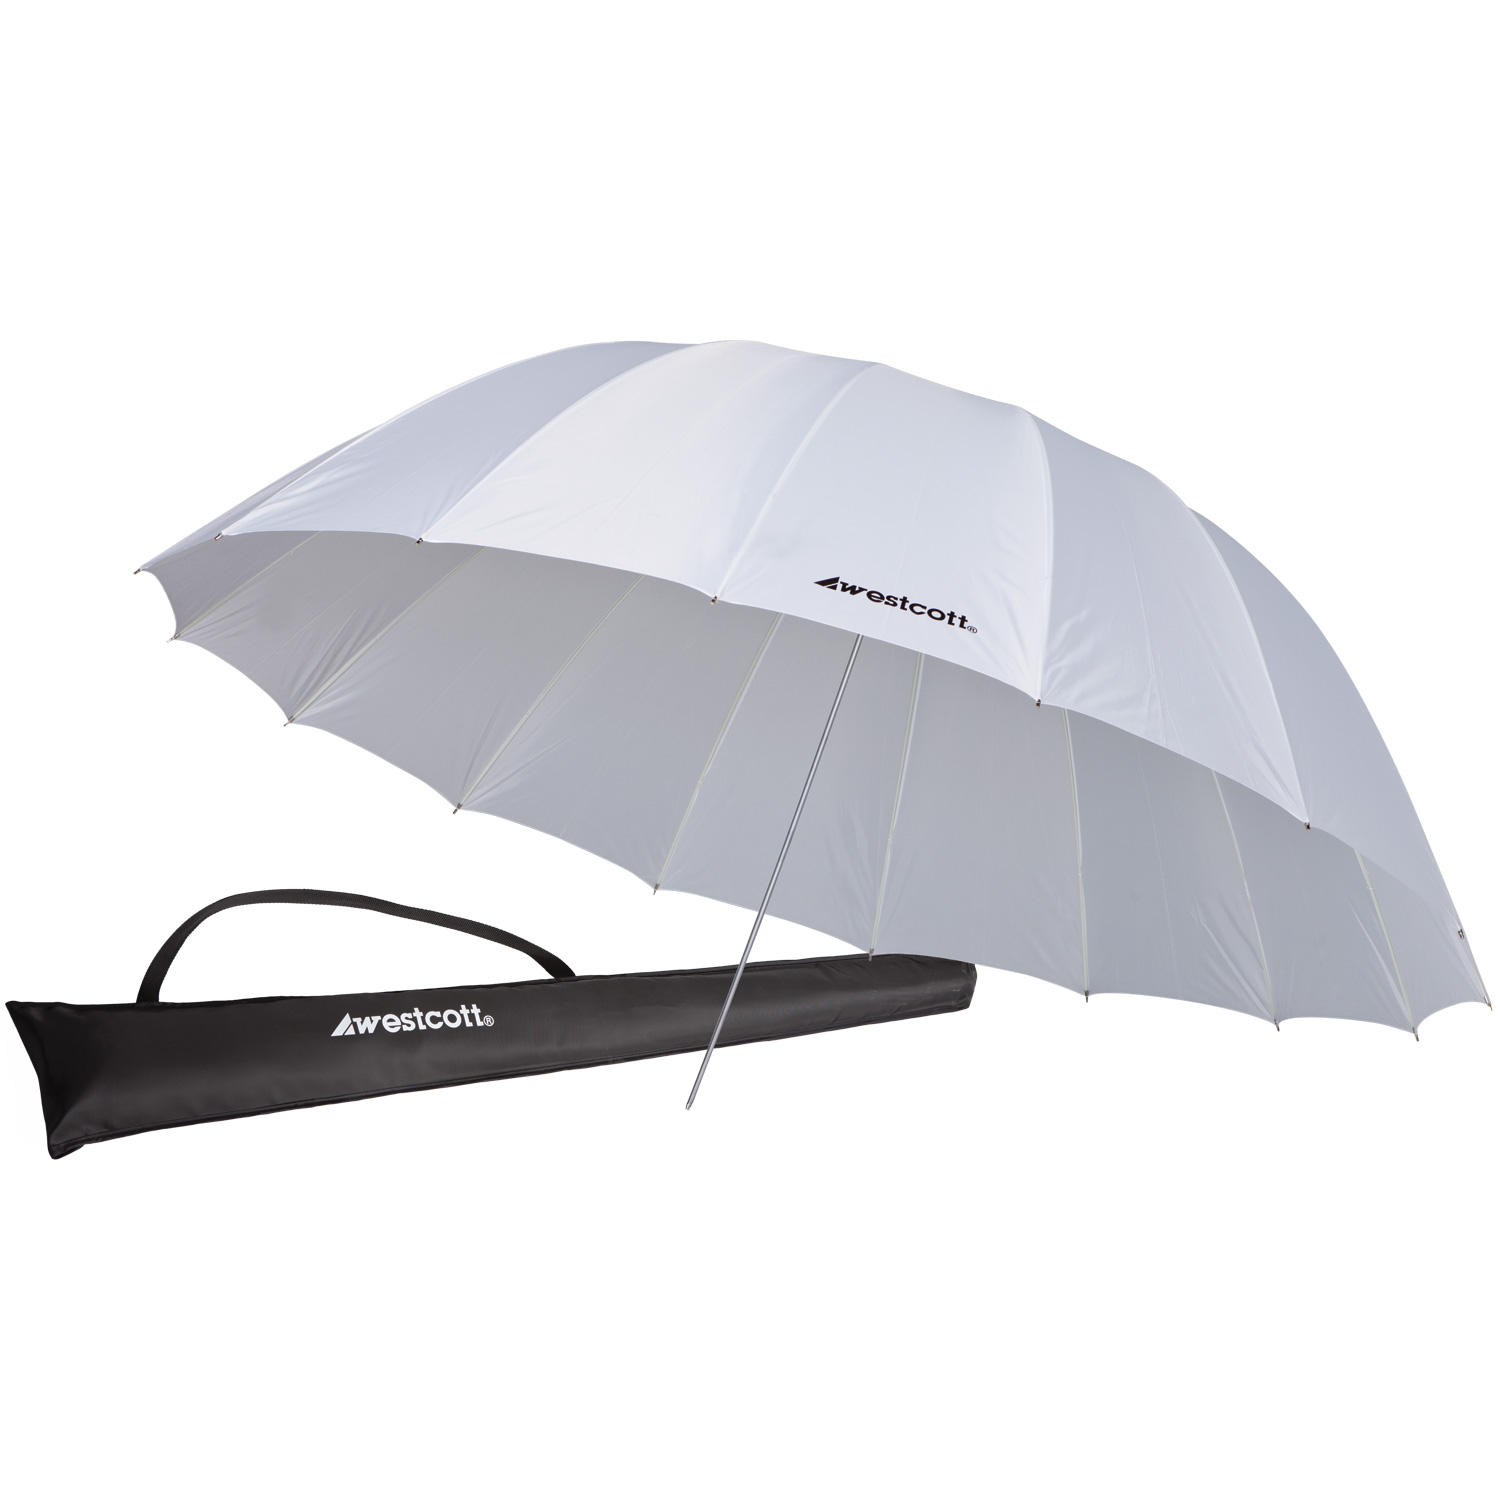 7' Parabolic Umbrella, White Diffusion